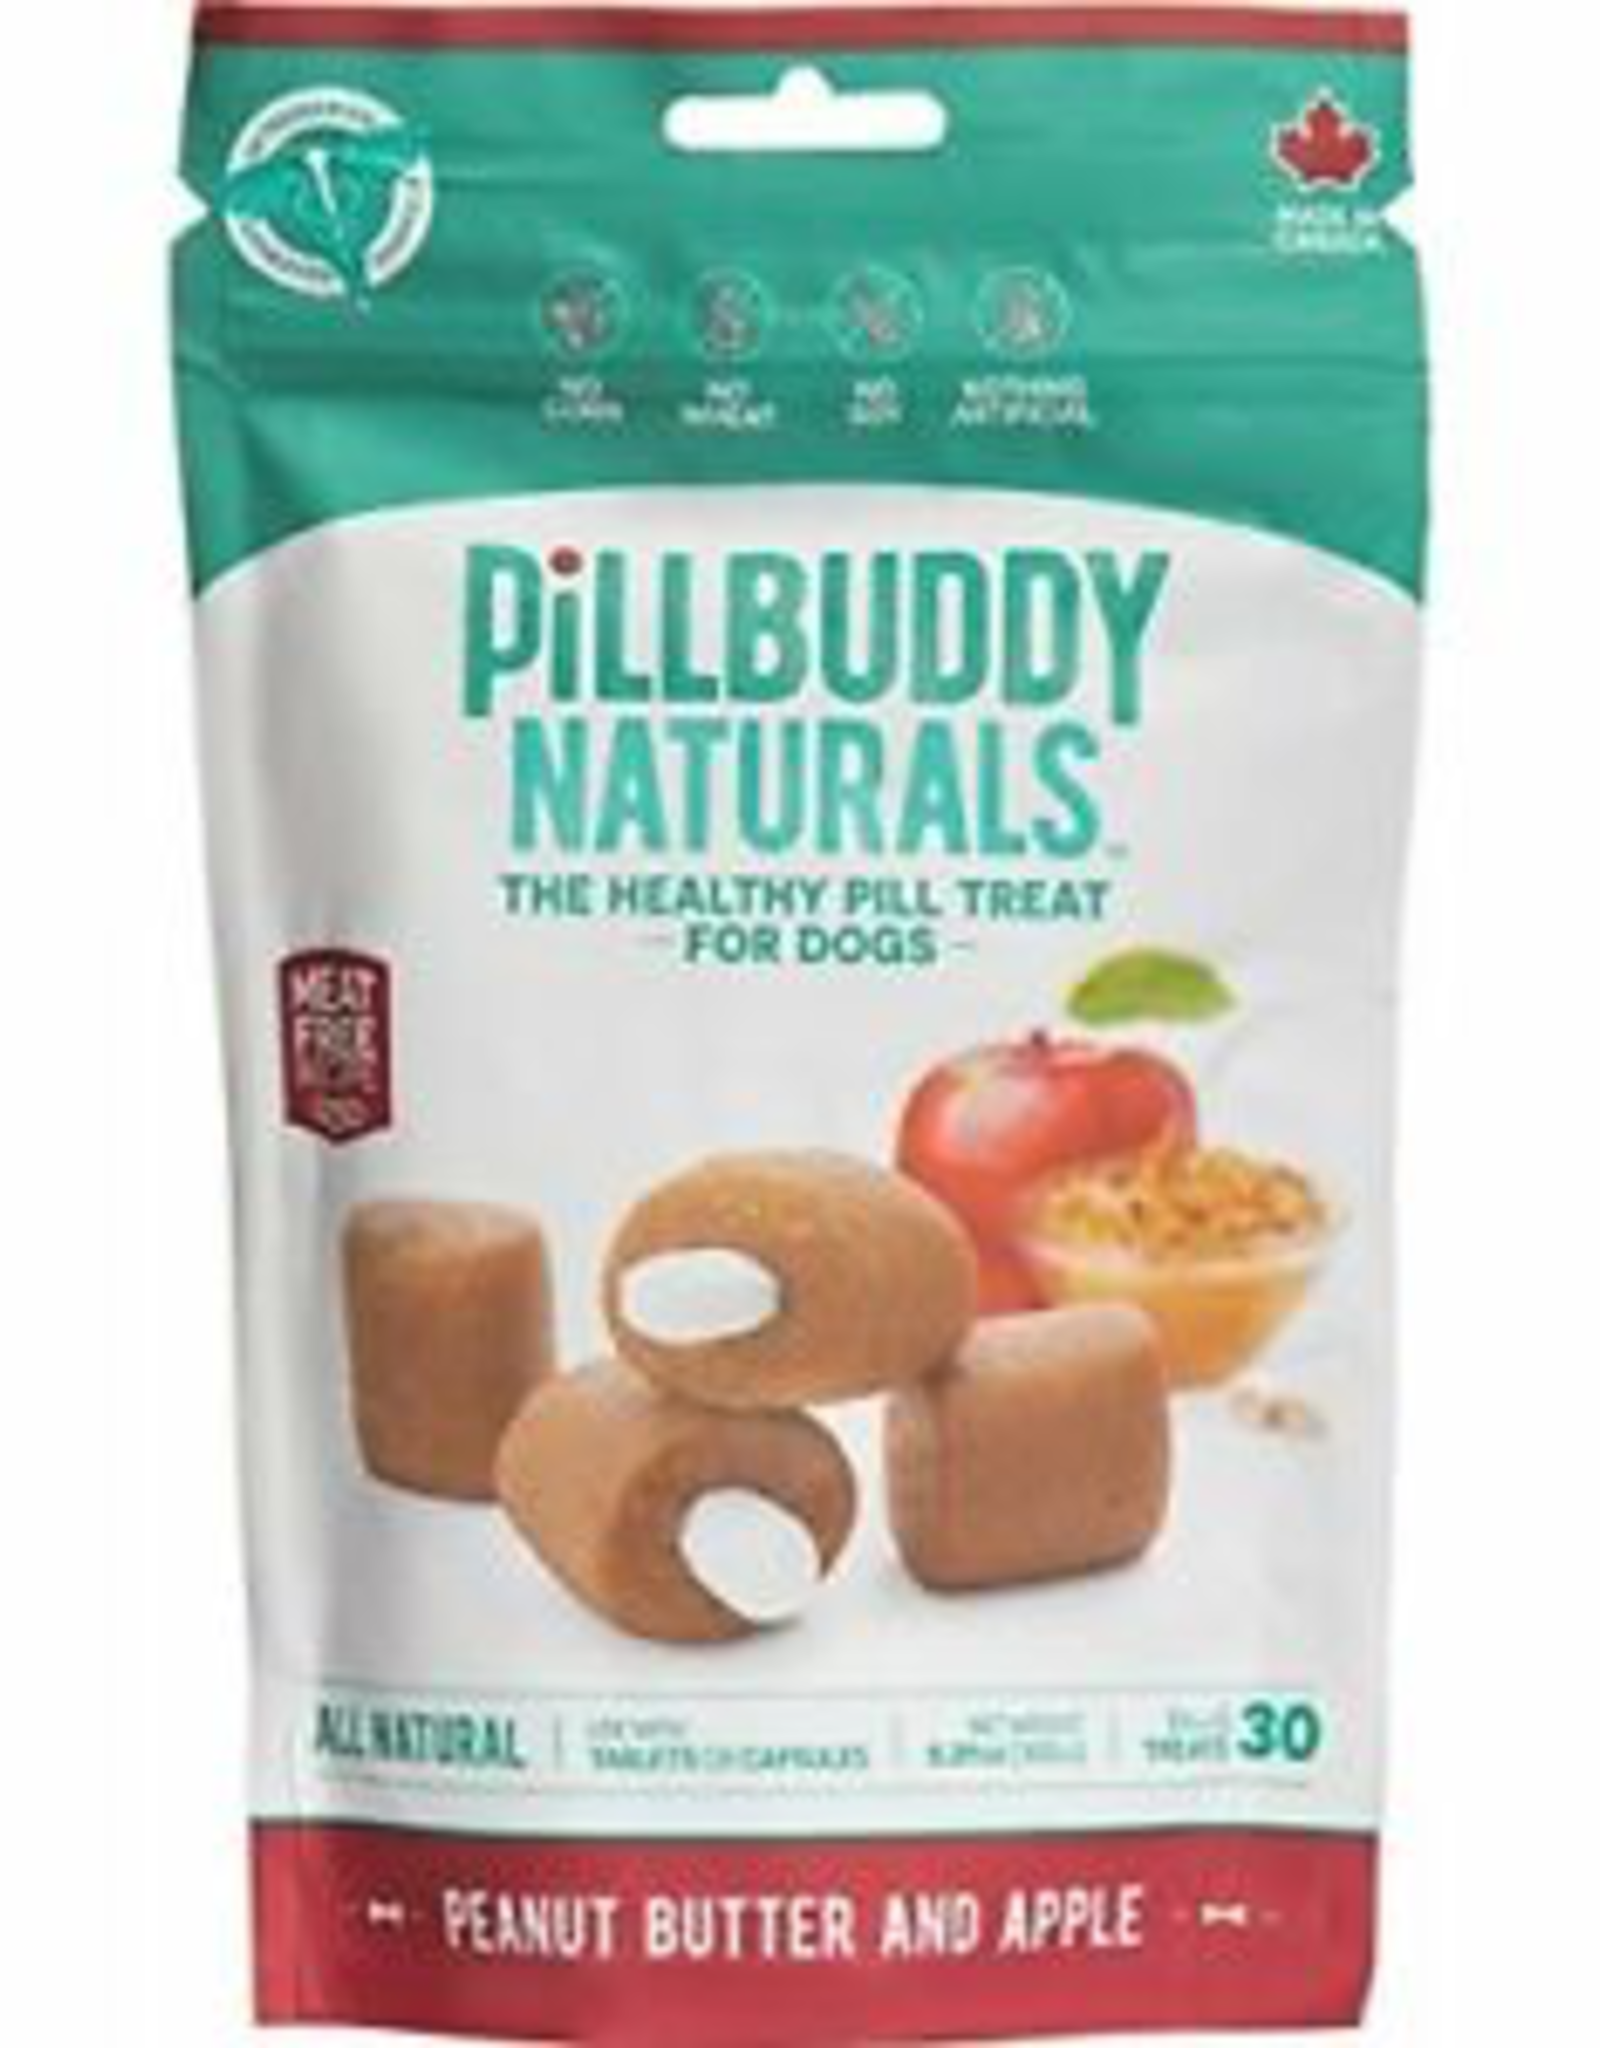 Presidio Natural Pill Buddy Naturals - Soft and Chewy Dog Treats - Peanut Butter and Apple -  150G